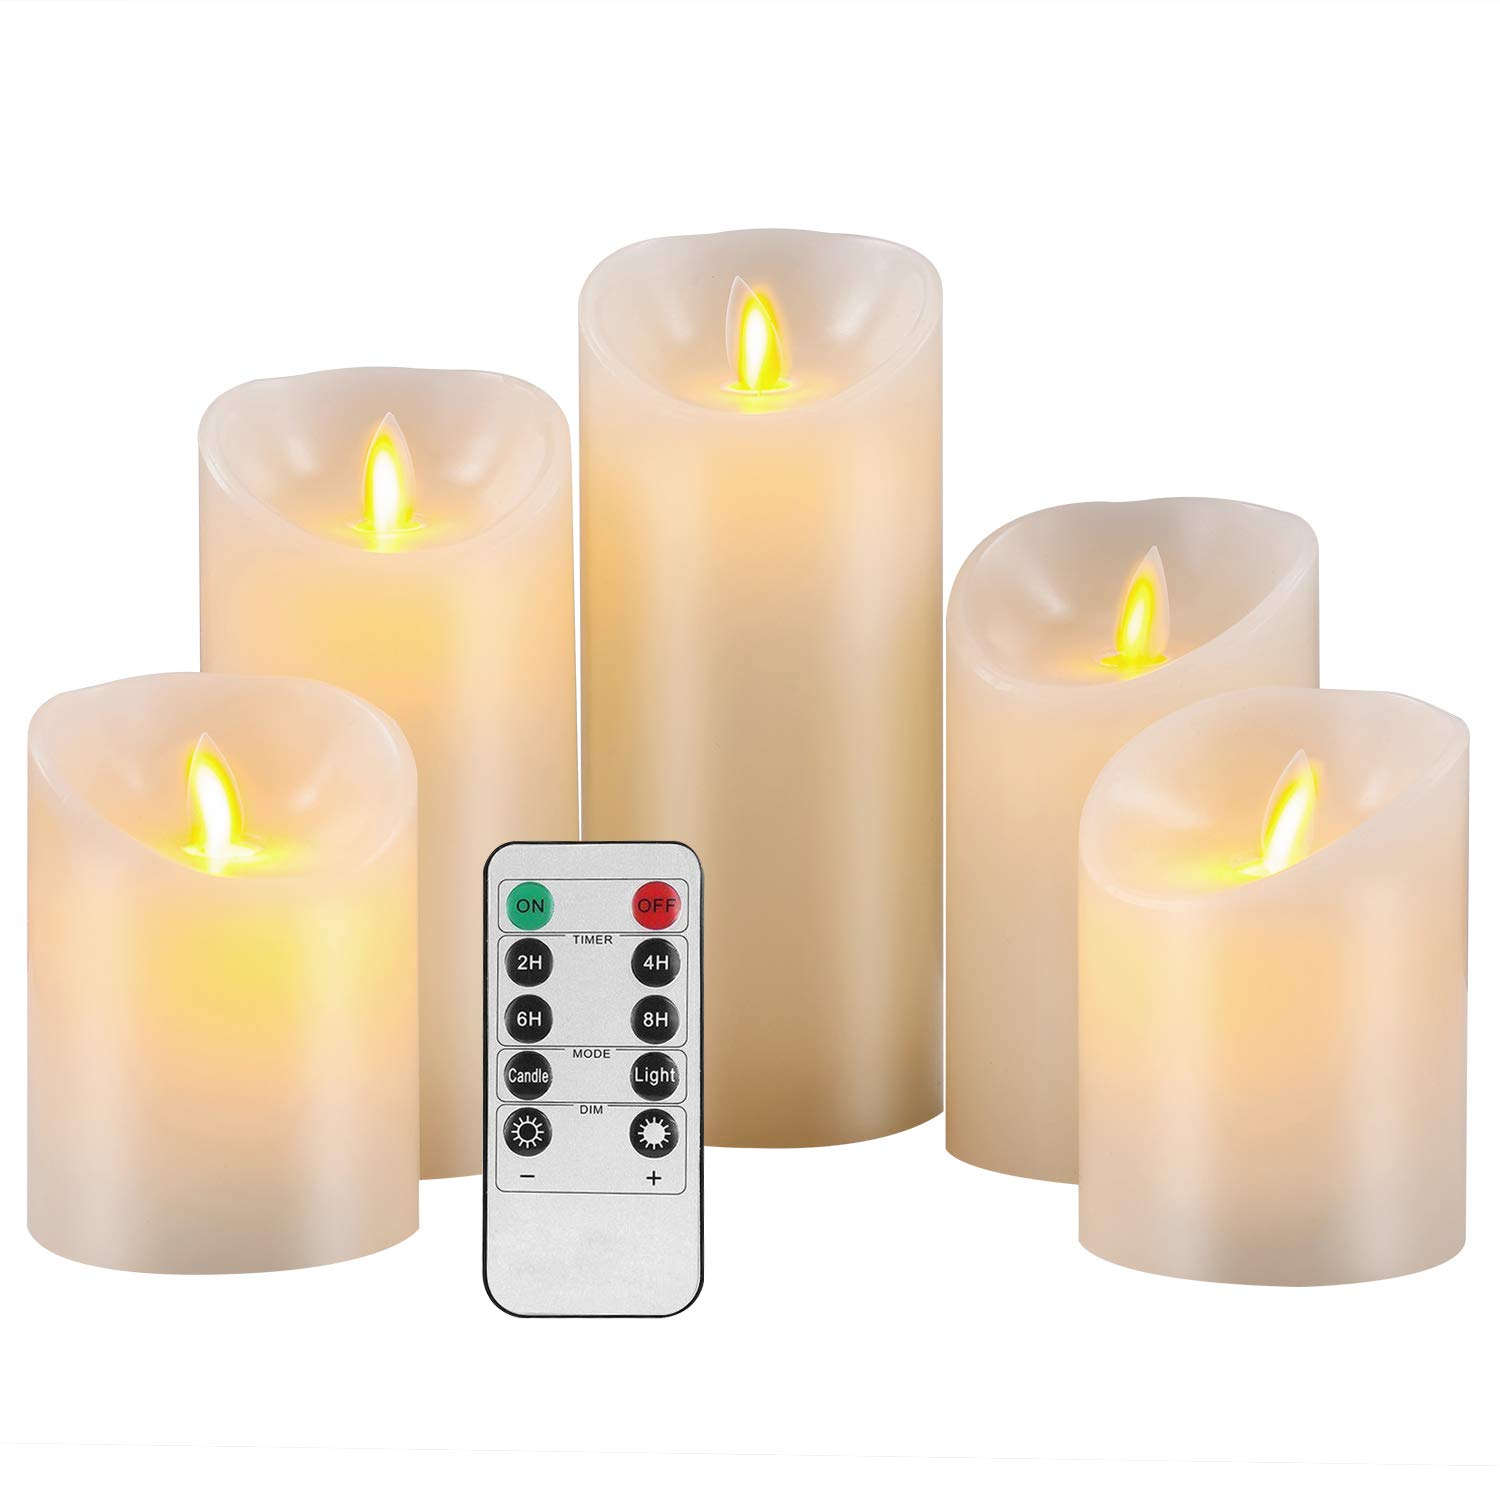 Pandaing Flameless Candles Set of 5 (D 3'' x H 4'' 4'' 5'' 6'' 7'') Battery Operated LED Pillar Real Wax Moving Flame Flickering Electric Candle Gift Set with Remote Control Cycling 24 Hours Timer by Pandaing (Image #1)